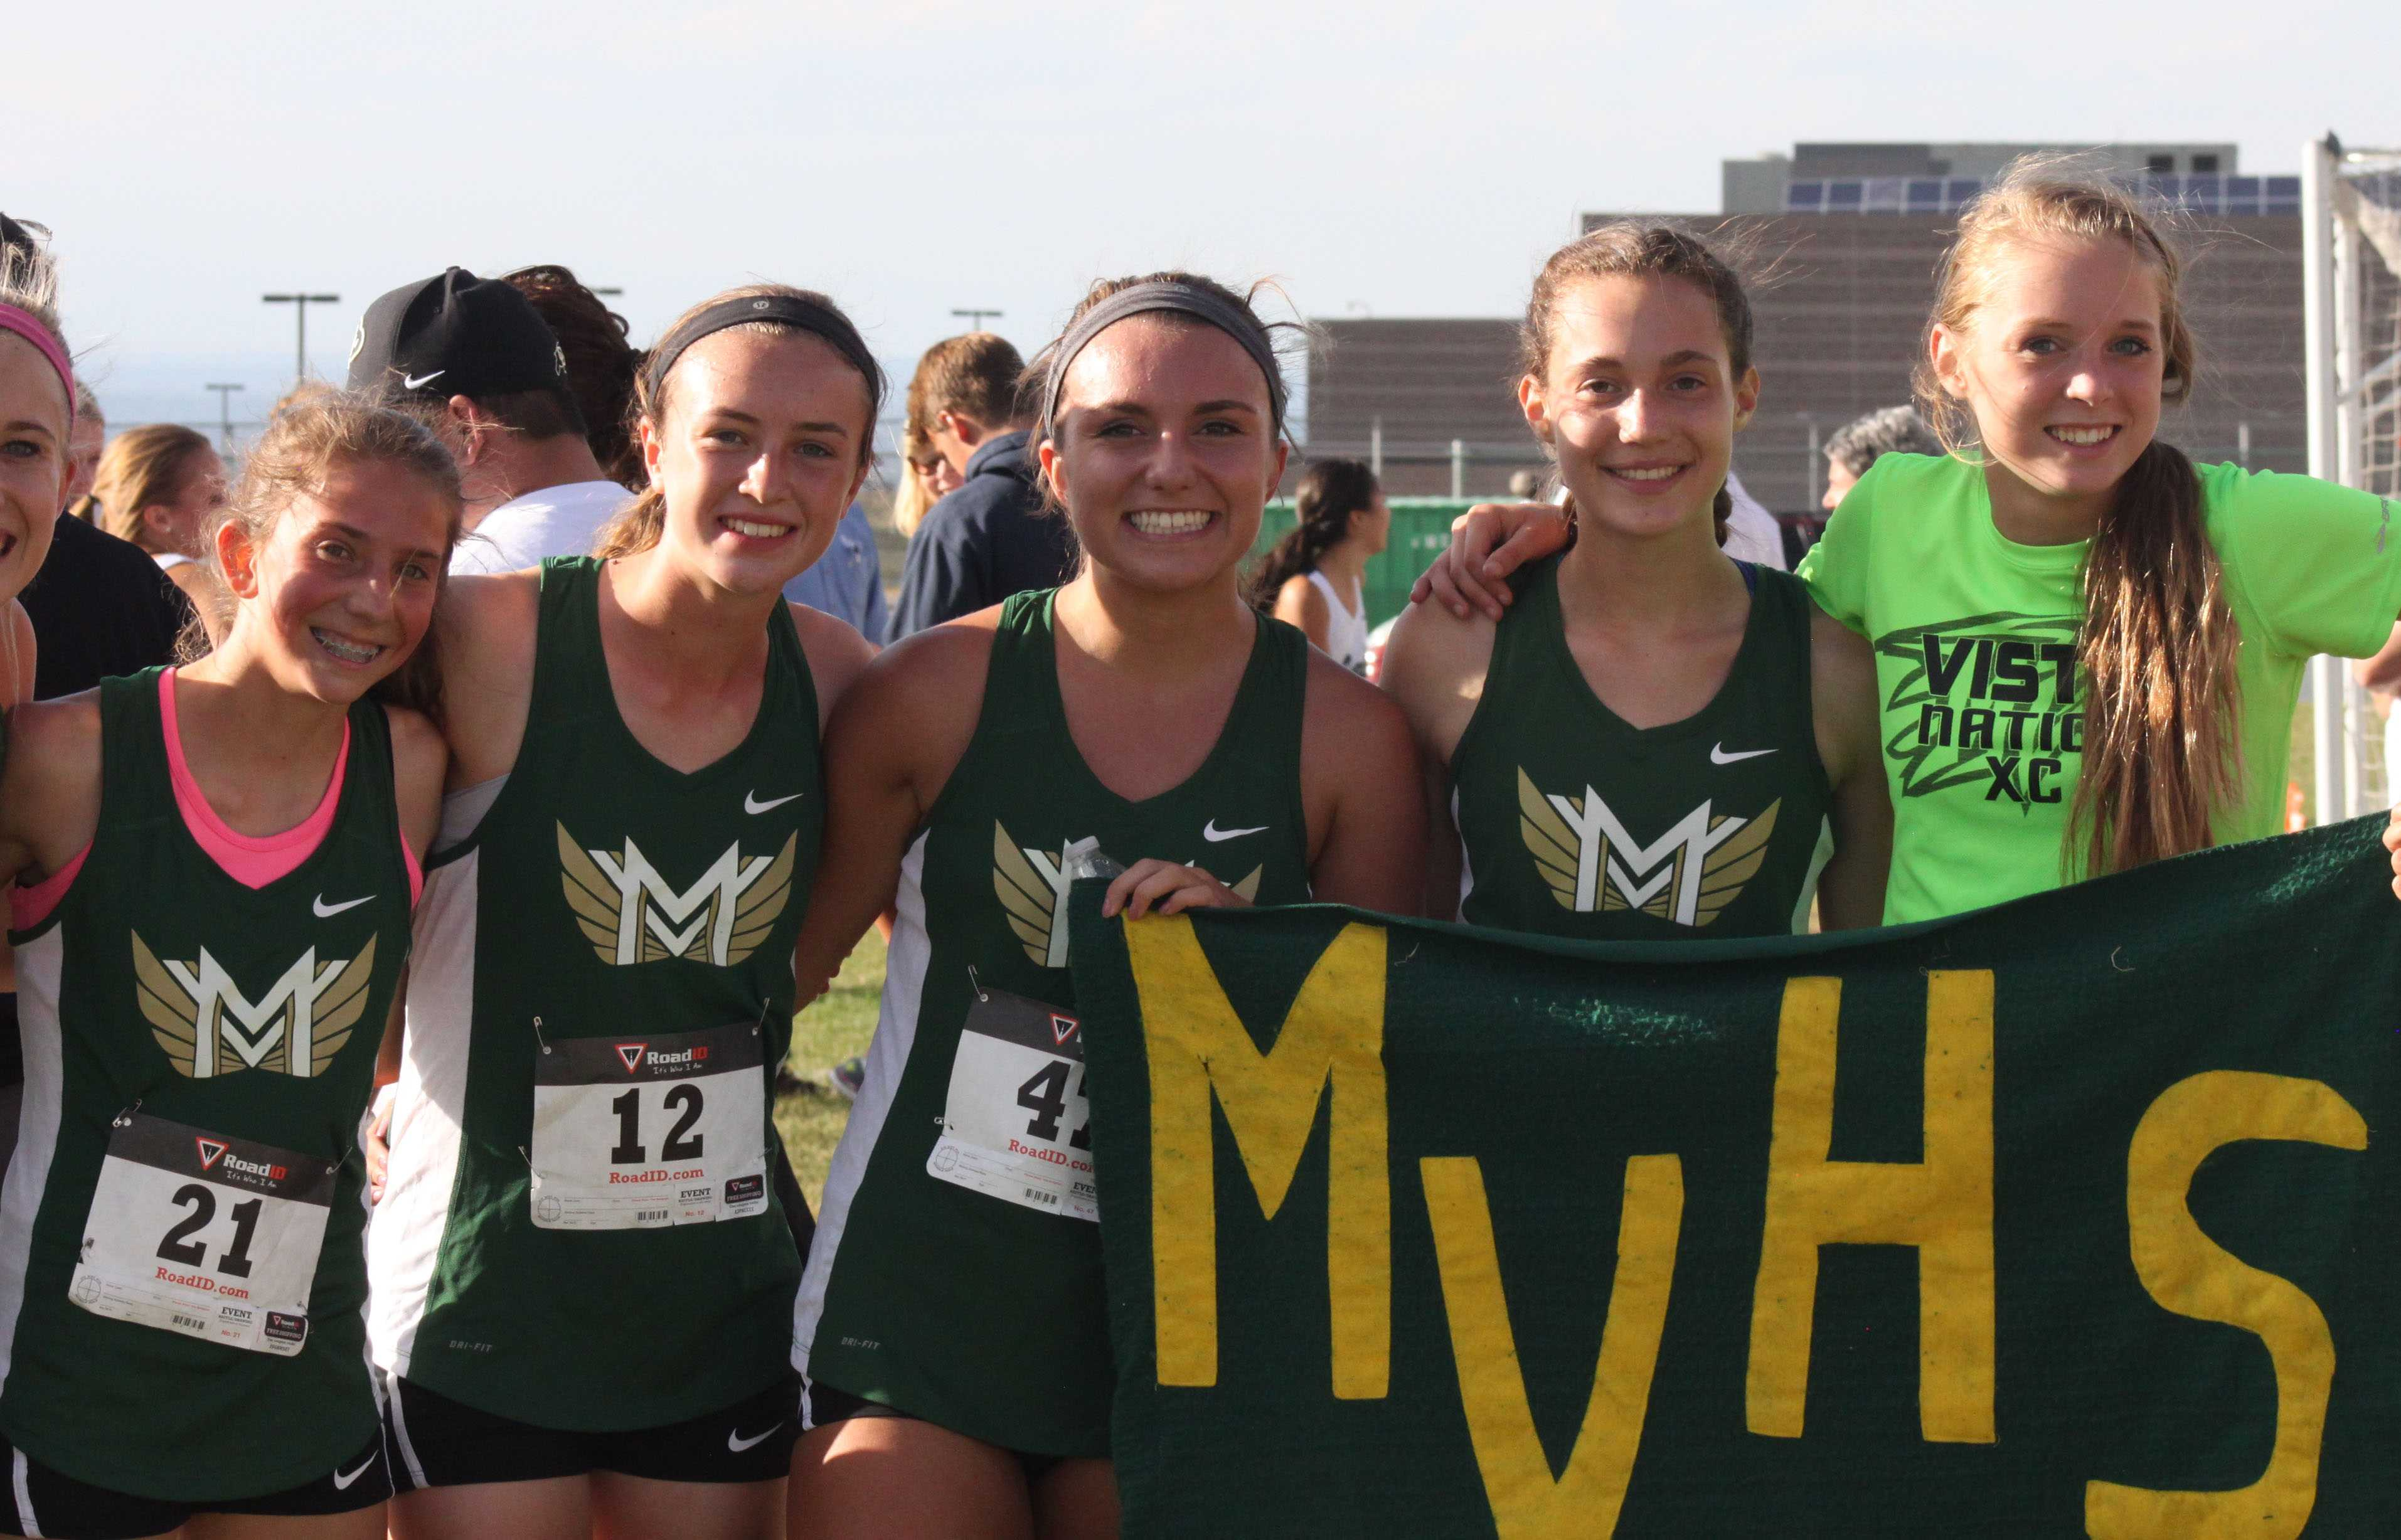 PHOTOS: Vista Nation 2-Mile Invitational